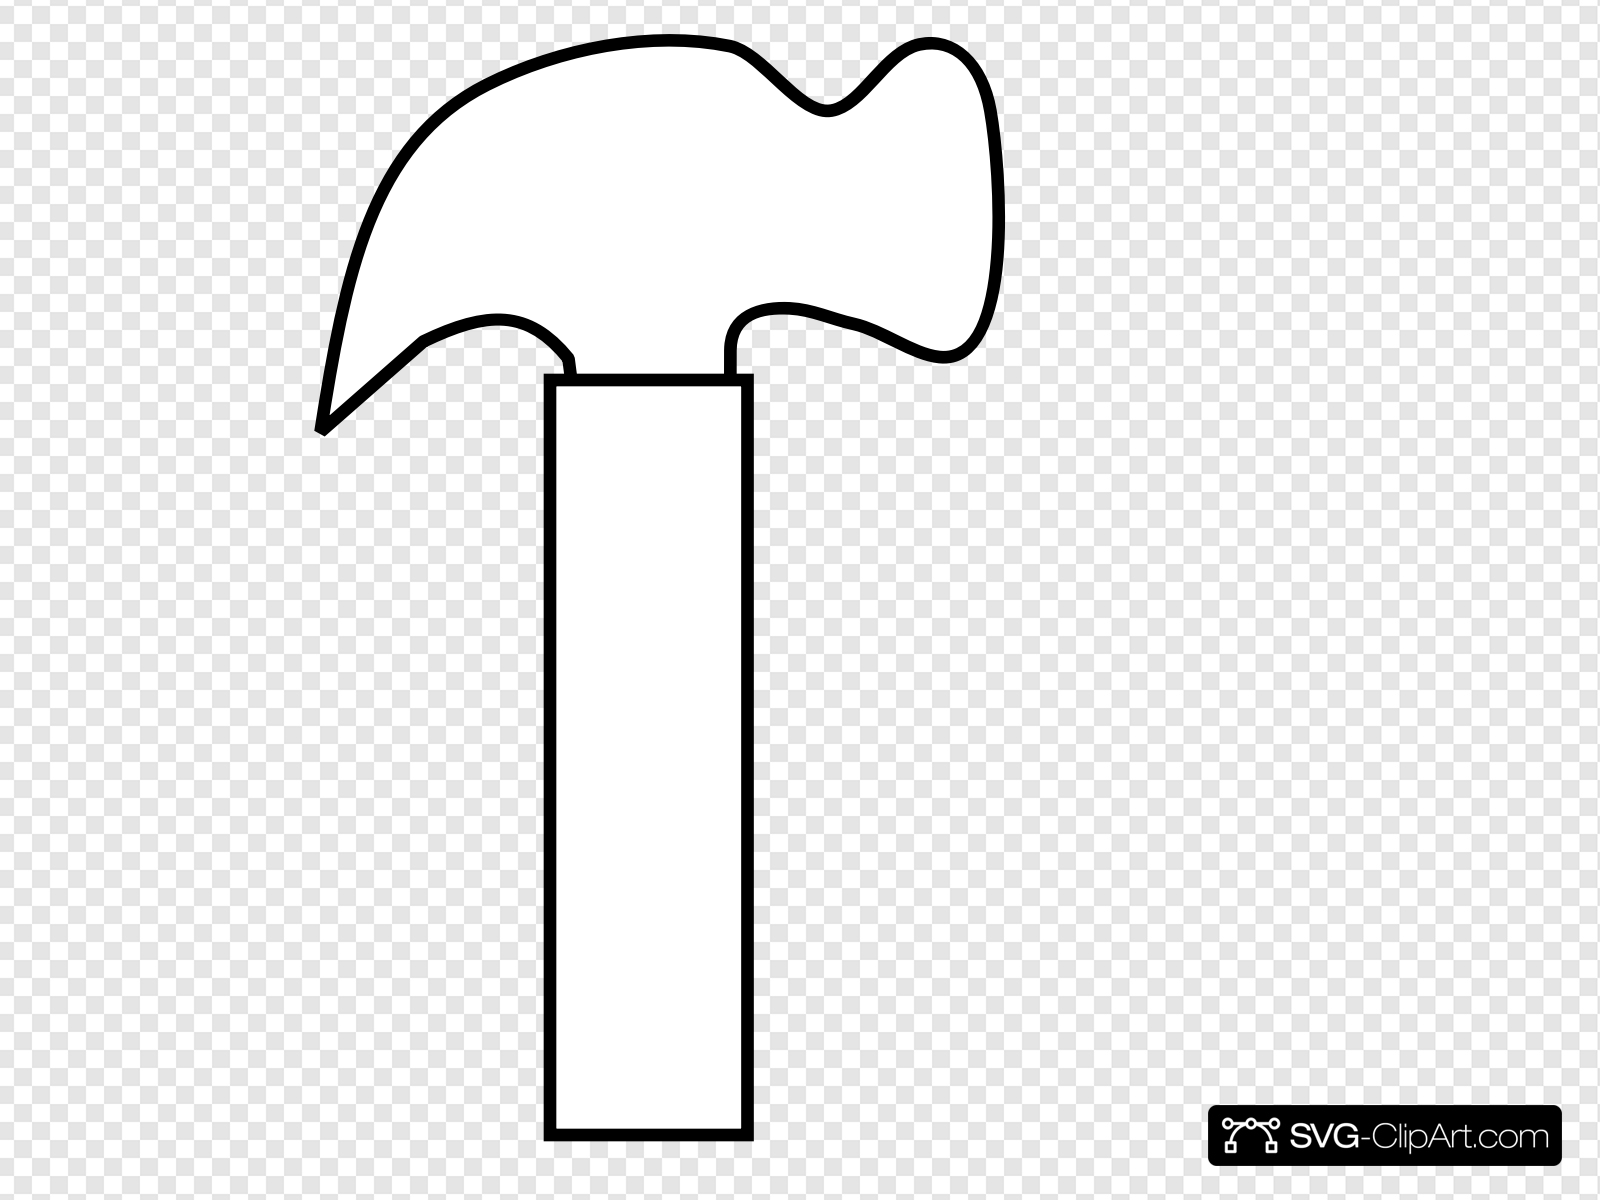 New White Hammer Clip art, Icon and SVG.